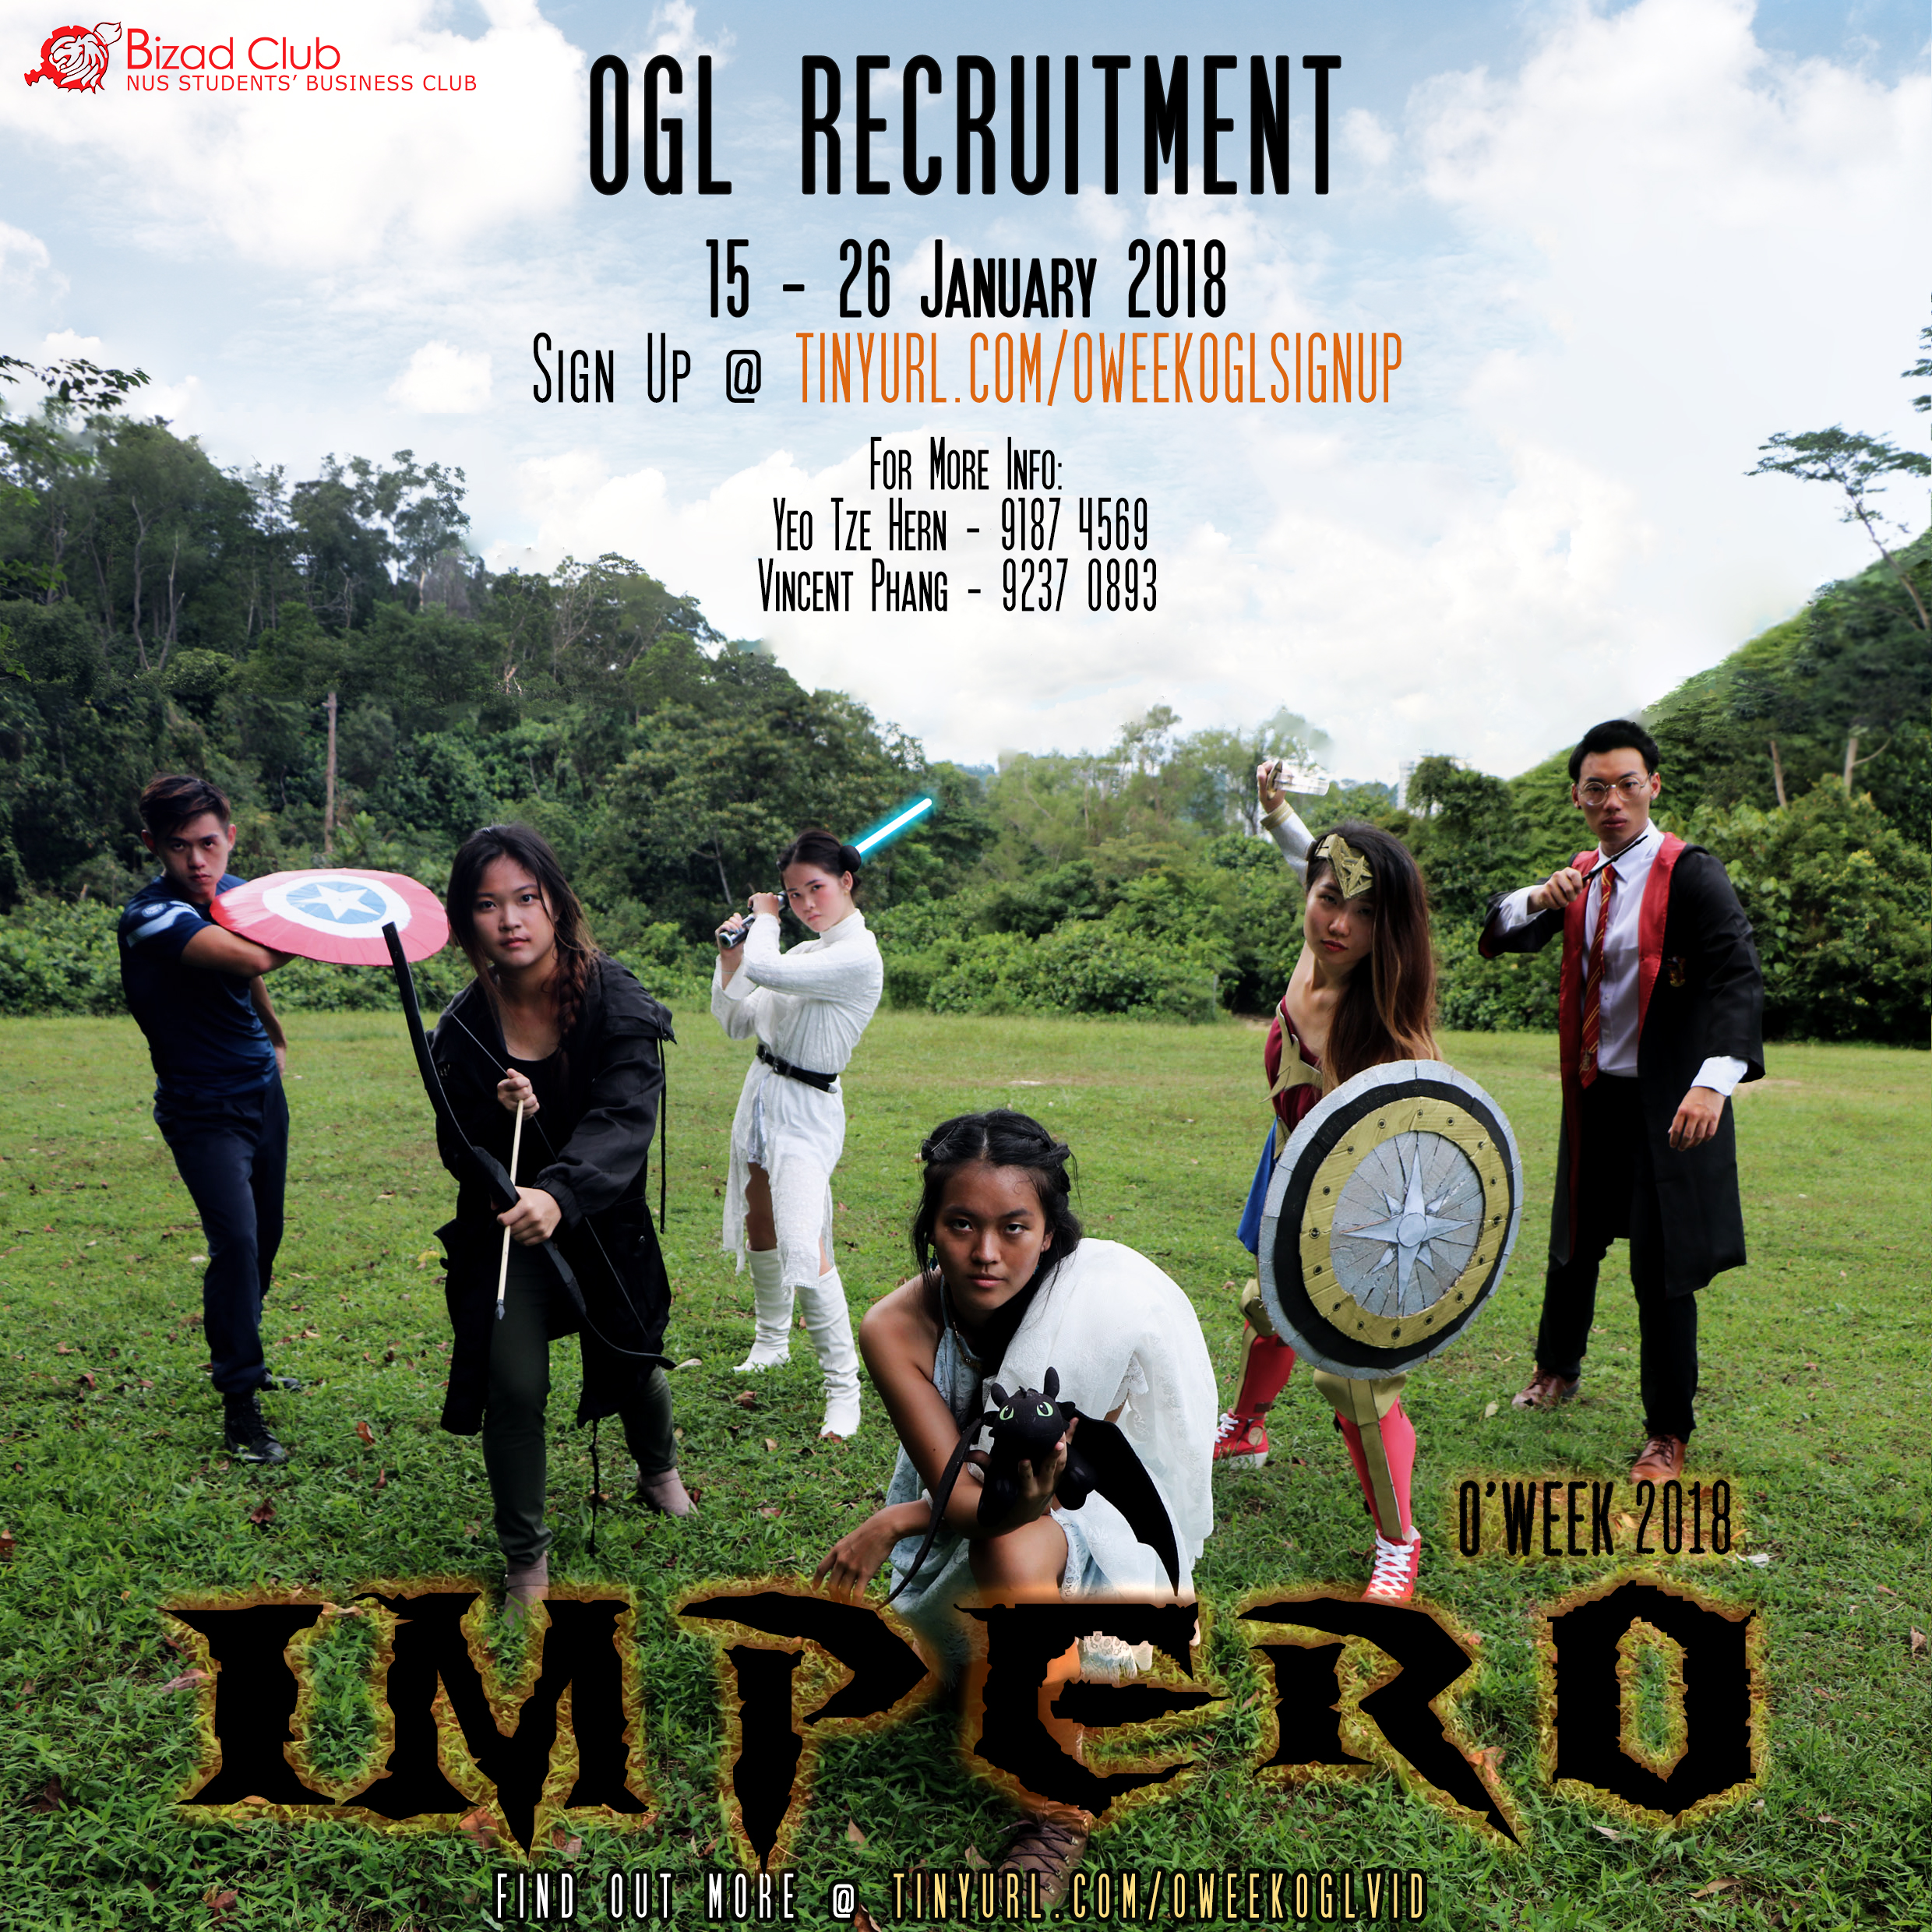 O'WEEK OGL Recruitment